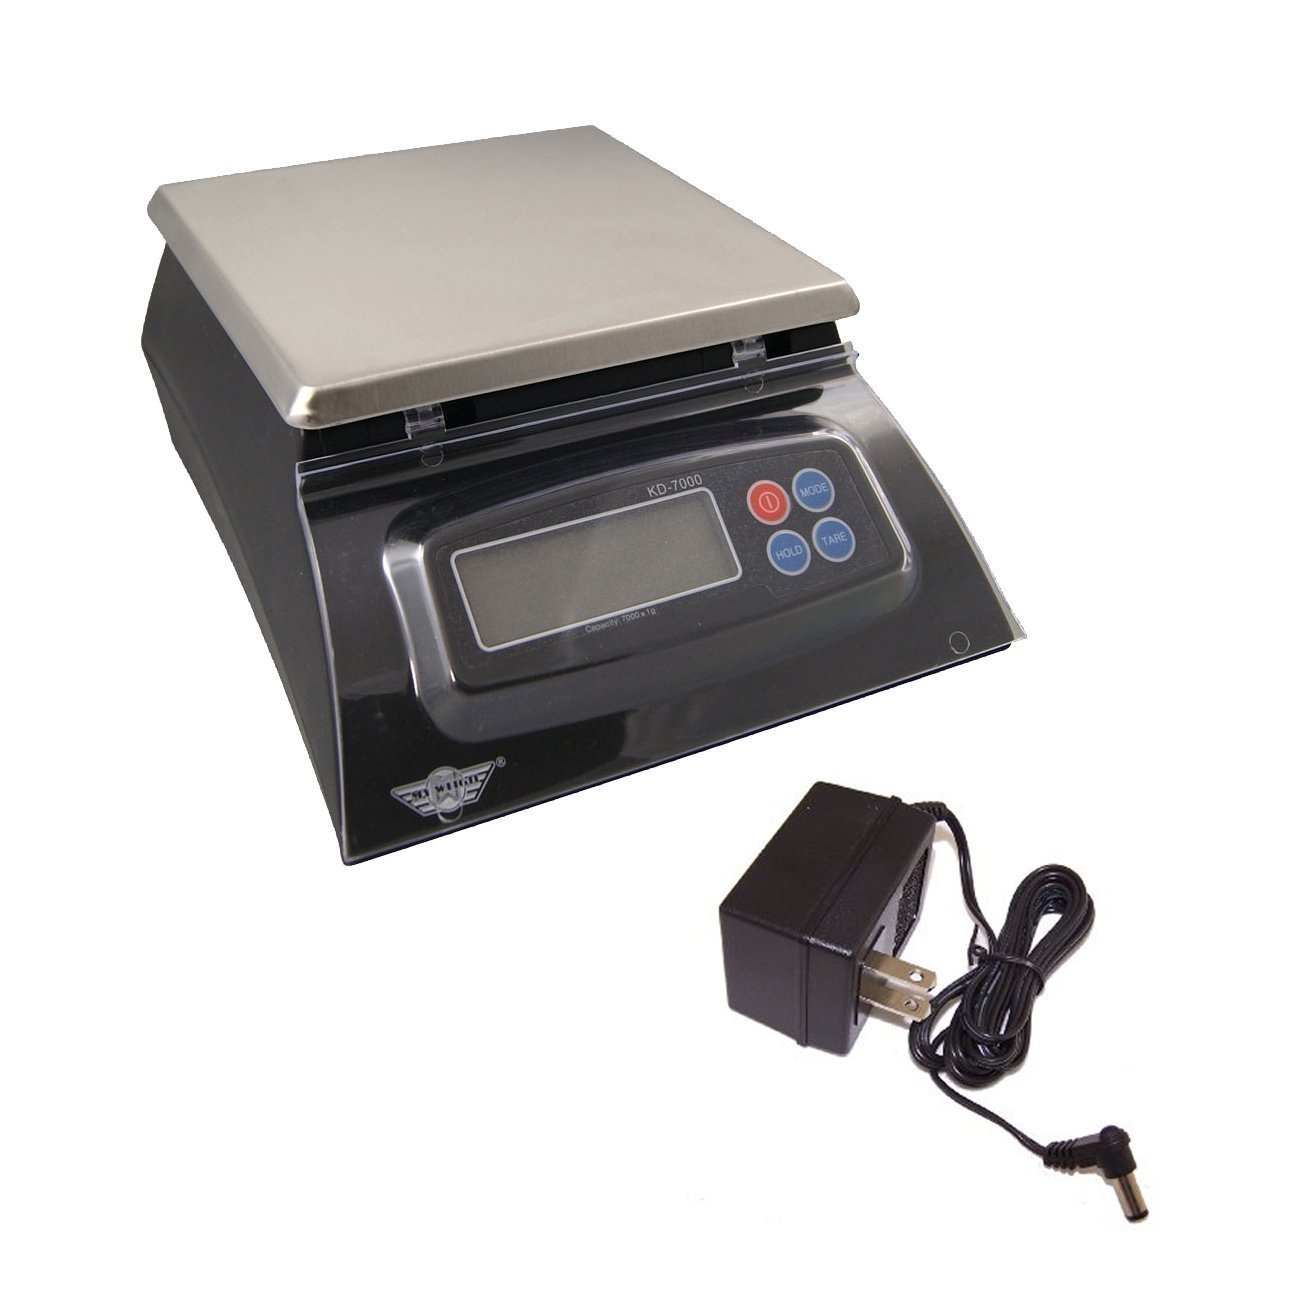 My Weigh KD-7000 Kitchen And Craft Digital Scale, Black + My Weigh AC Adapter by My Weigh